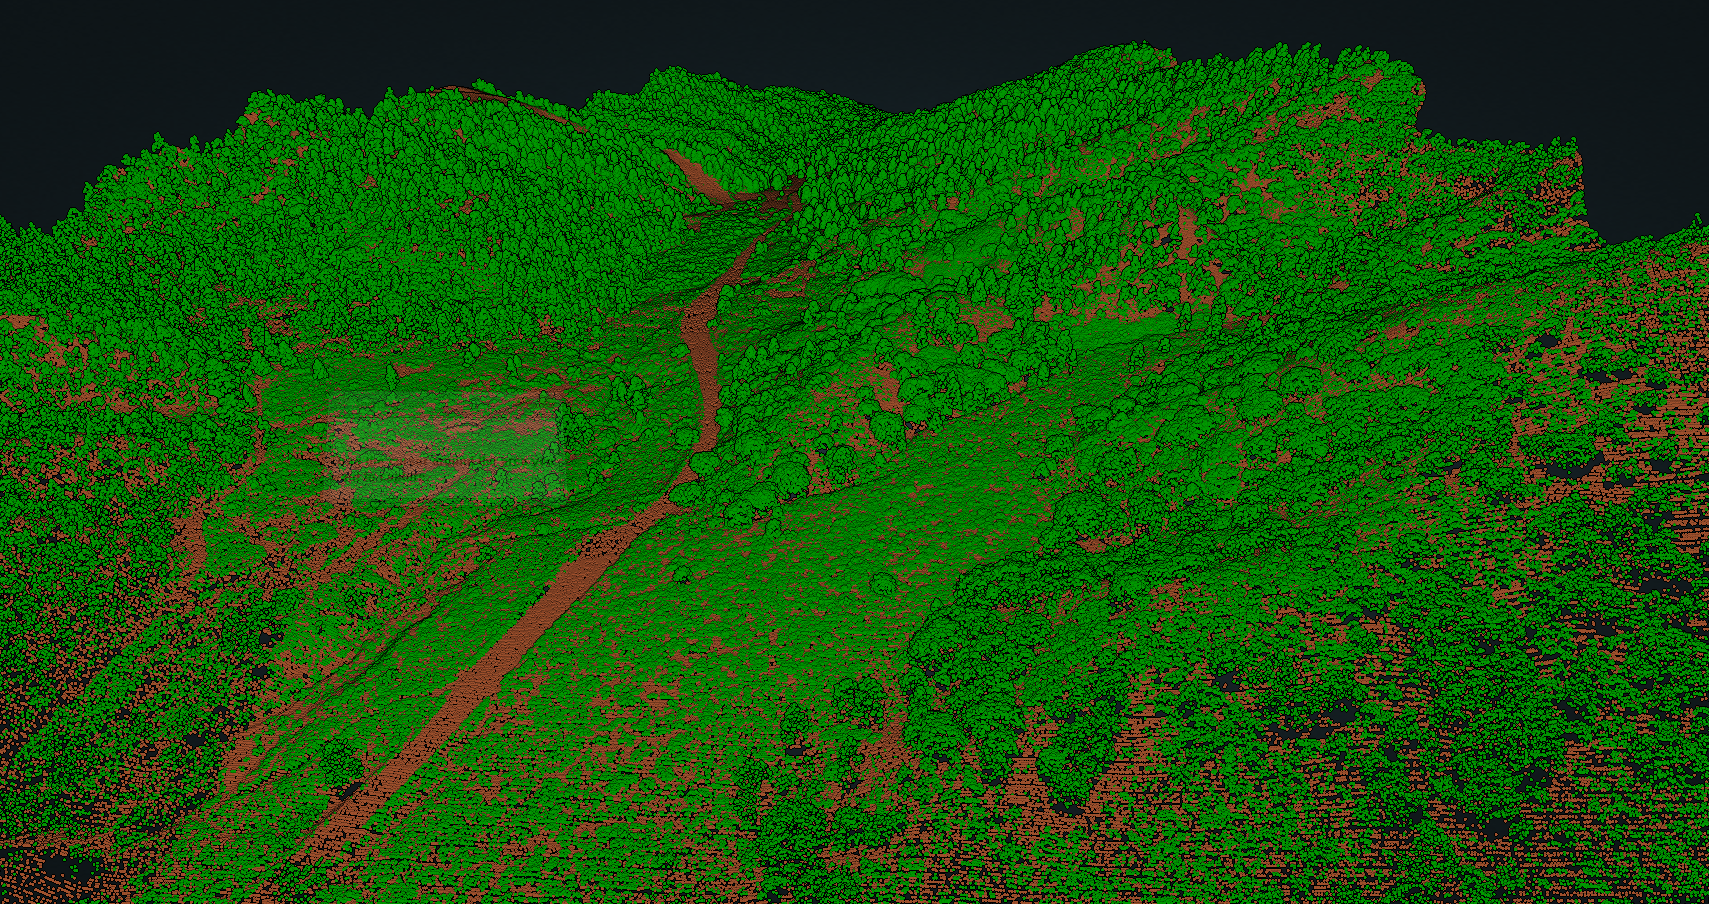 Forest cover and ground point cloud classifications in San Gabriel Mountains near Wrightville, California, along the southern San Andreas fault.